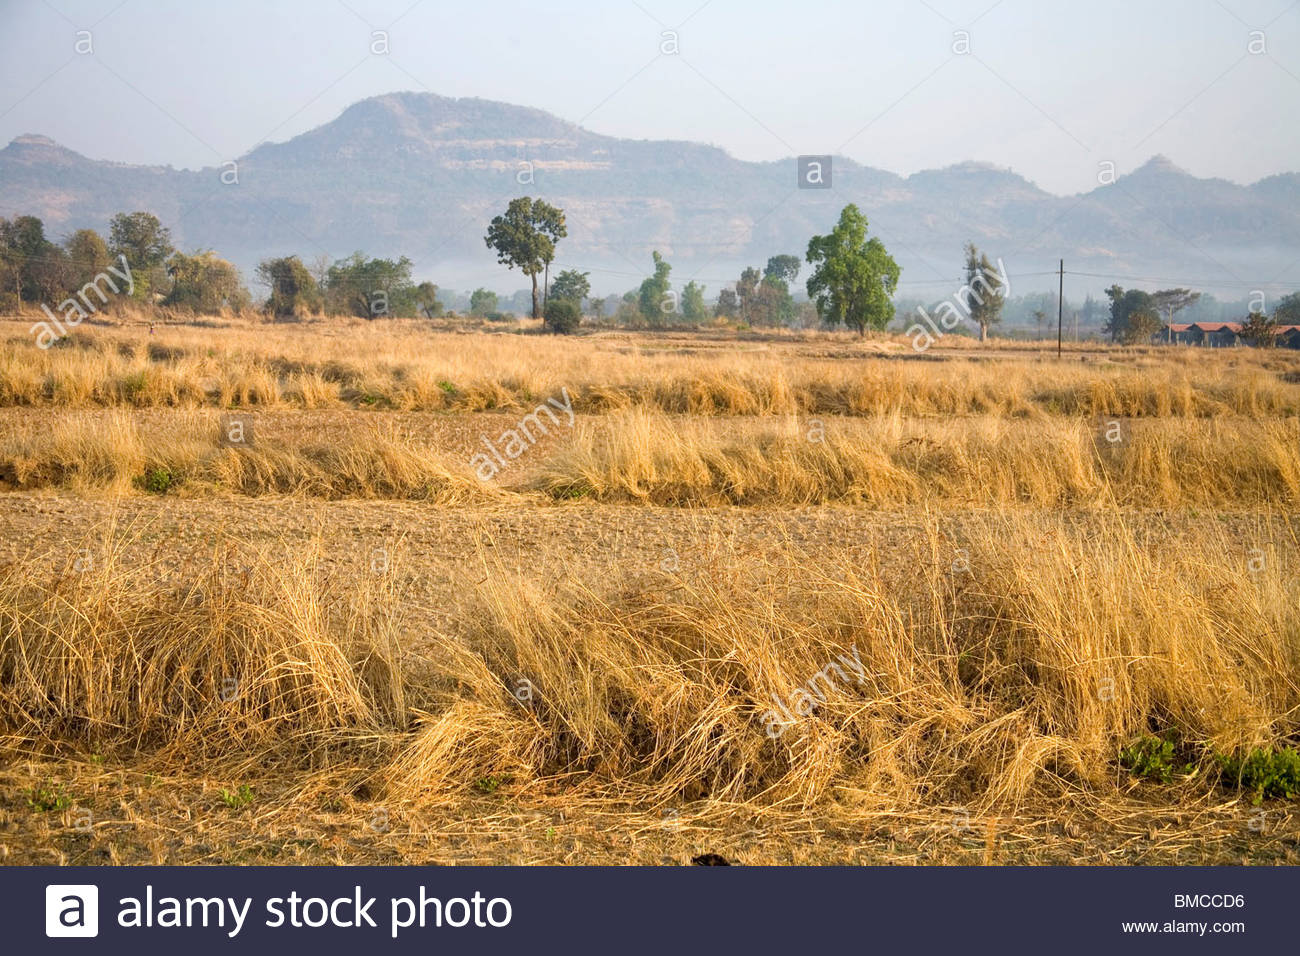 Dry grass of wheat crop mountain range in background Karjat 1300x956